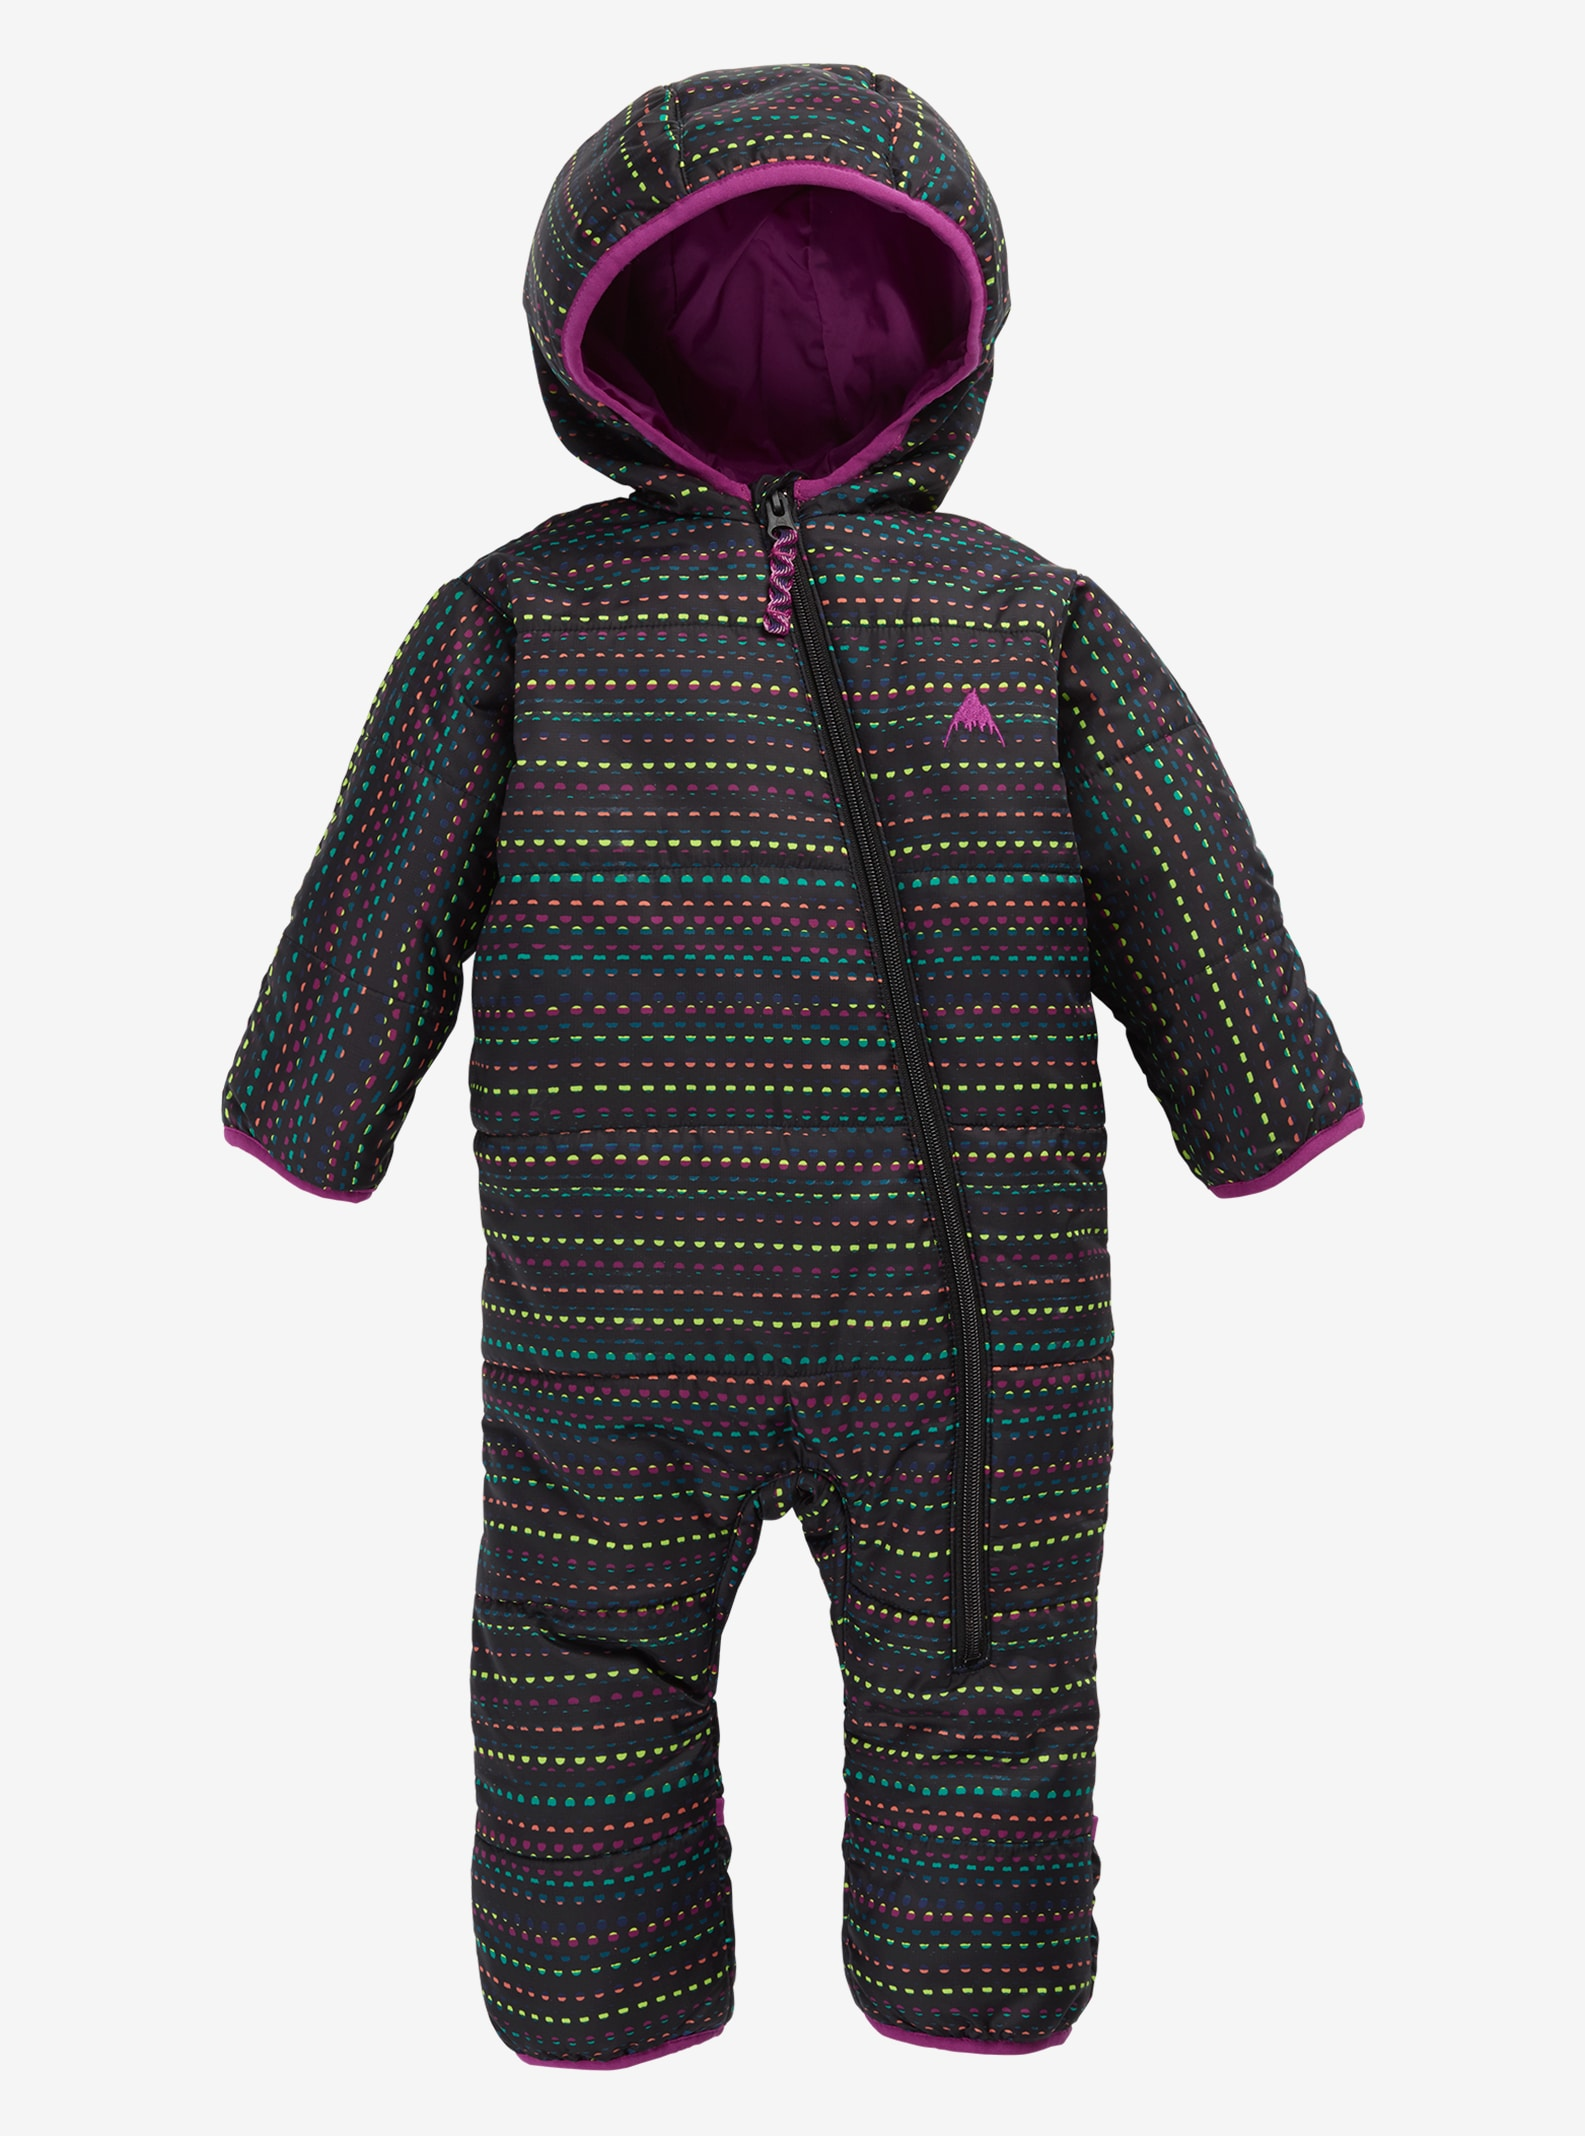 Kids' Minishred Infant Buddy Bunting Suit shown in Candy Dots